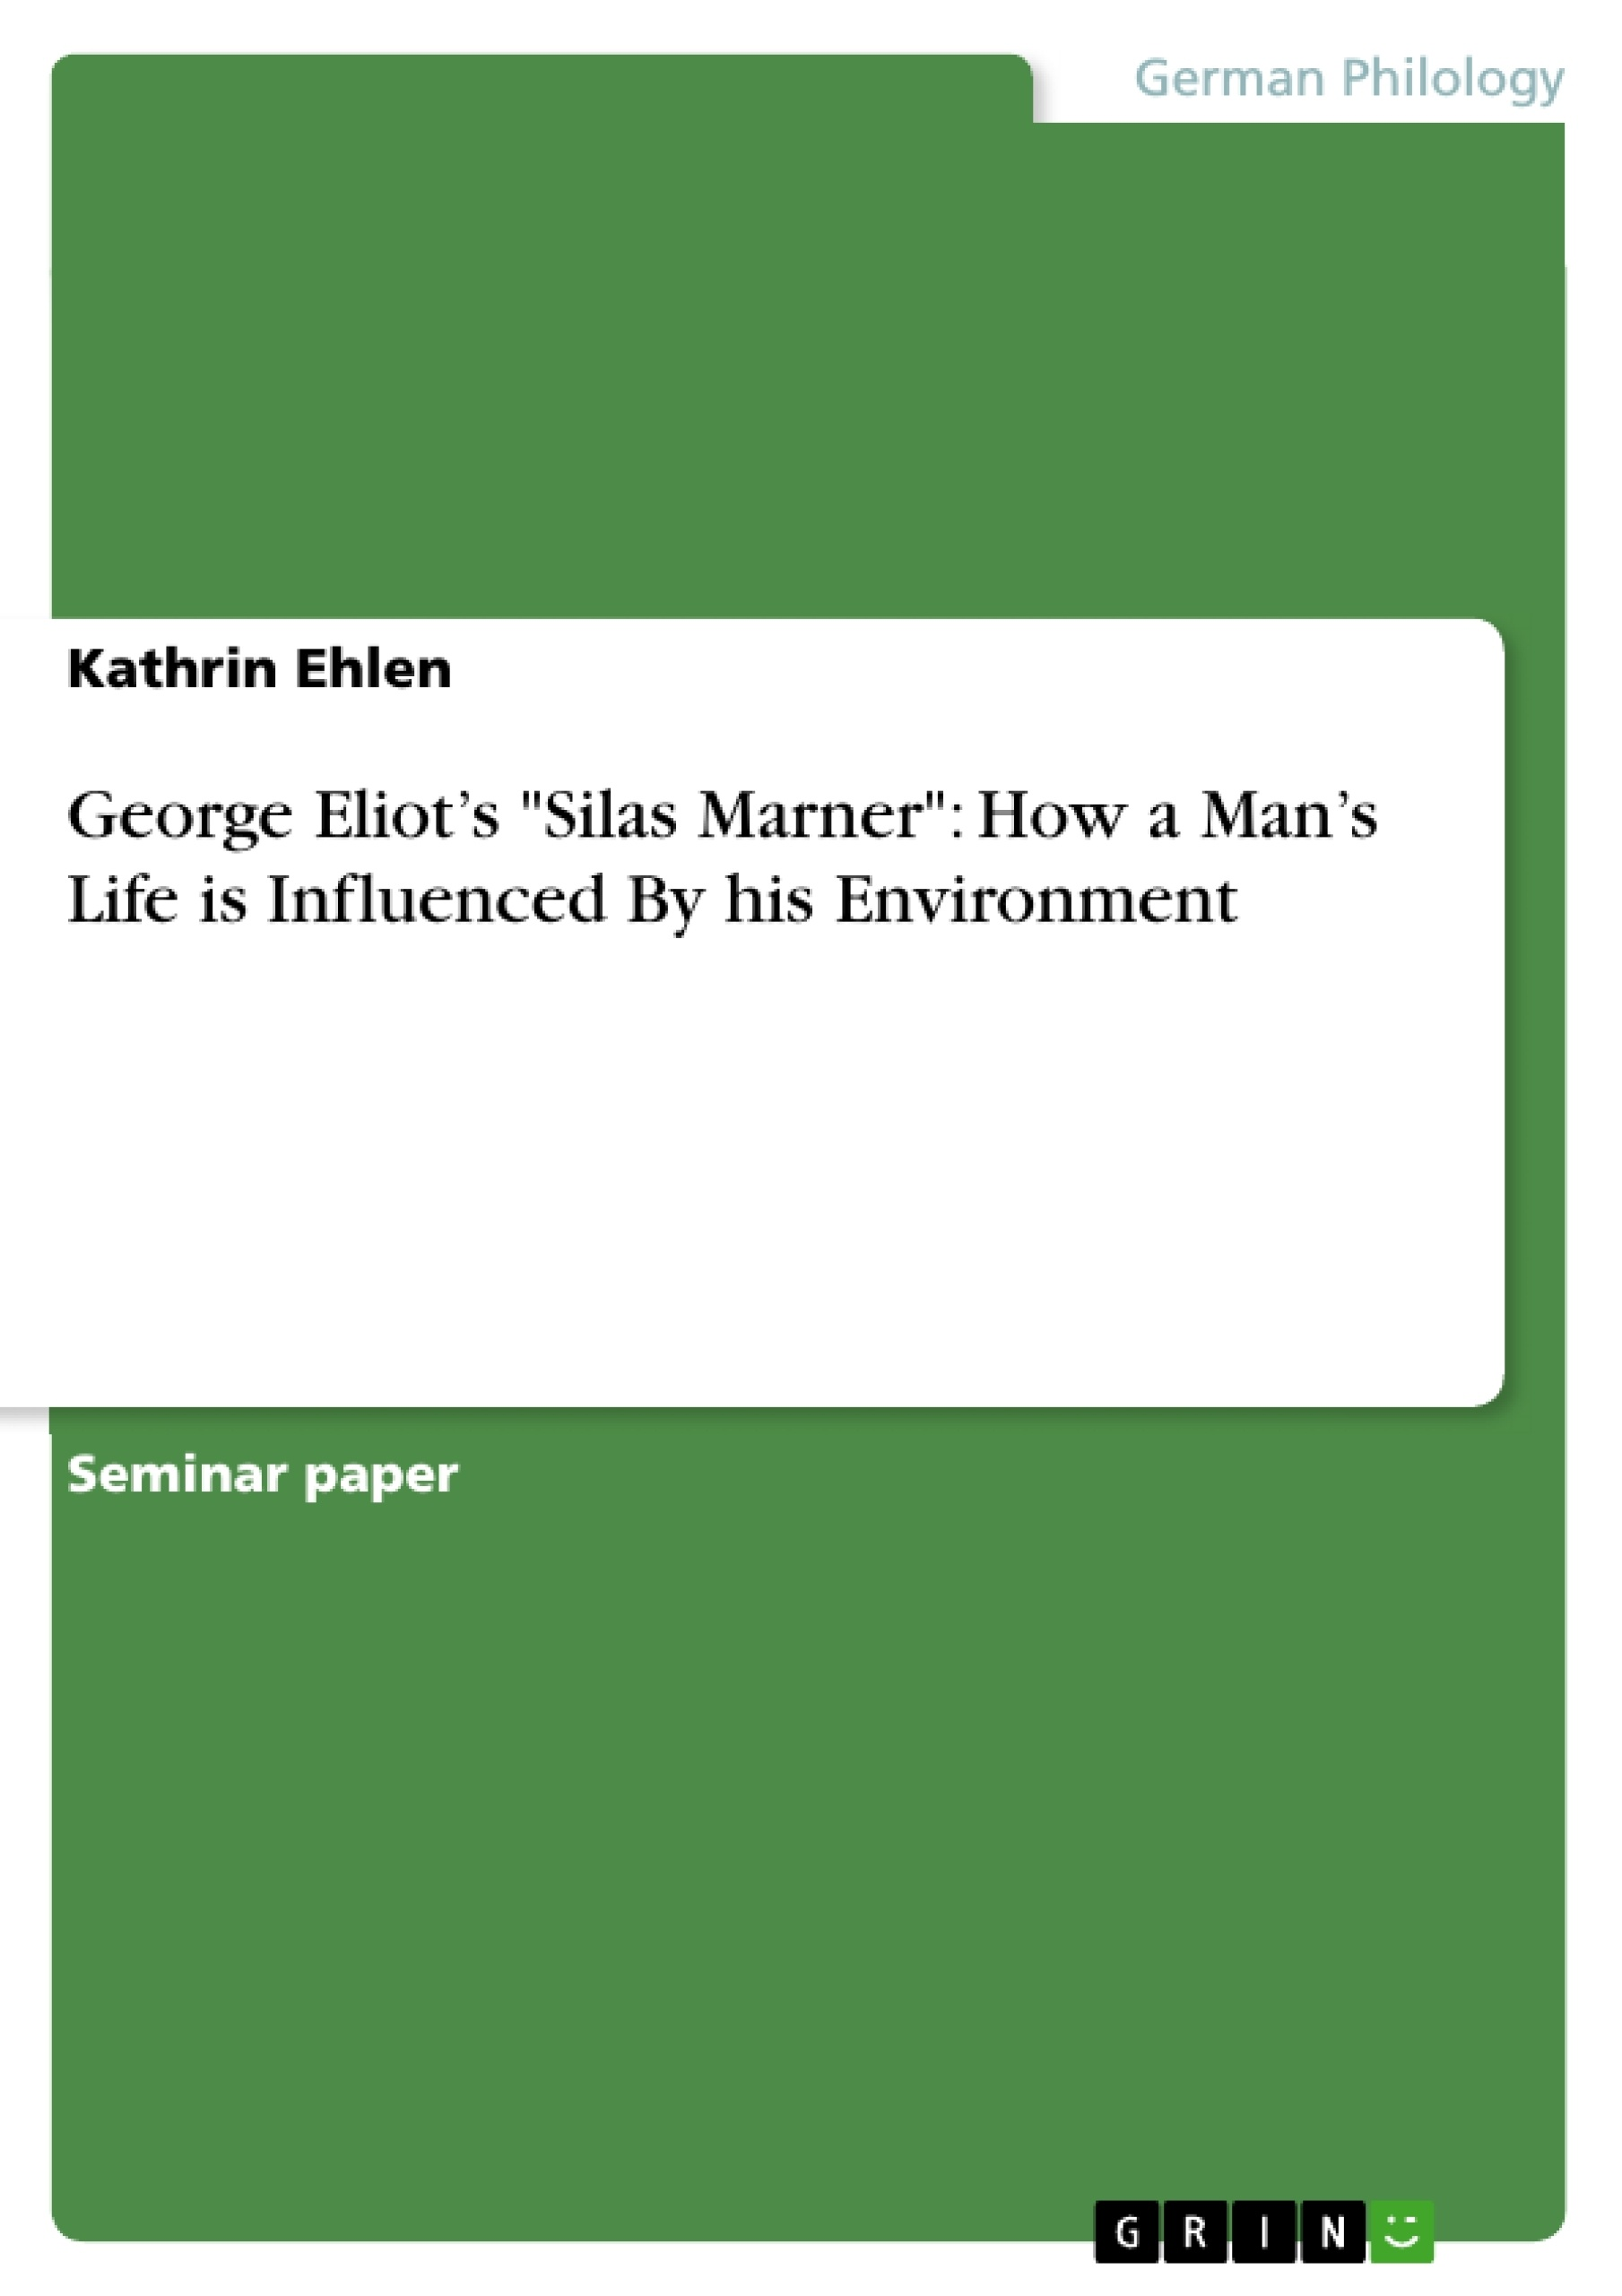 silas marner essay essay warehouse warehouse essay compucenter  george eliot s silas marner how a man s life is influenced by george eliot s